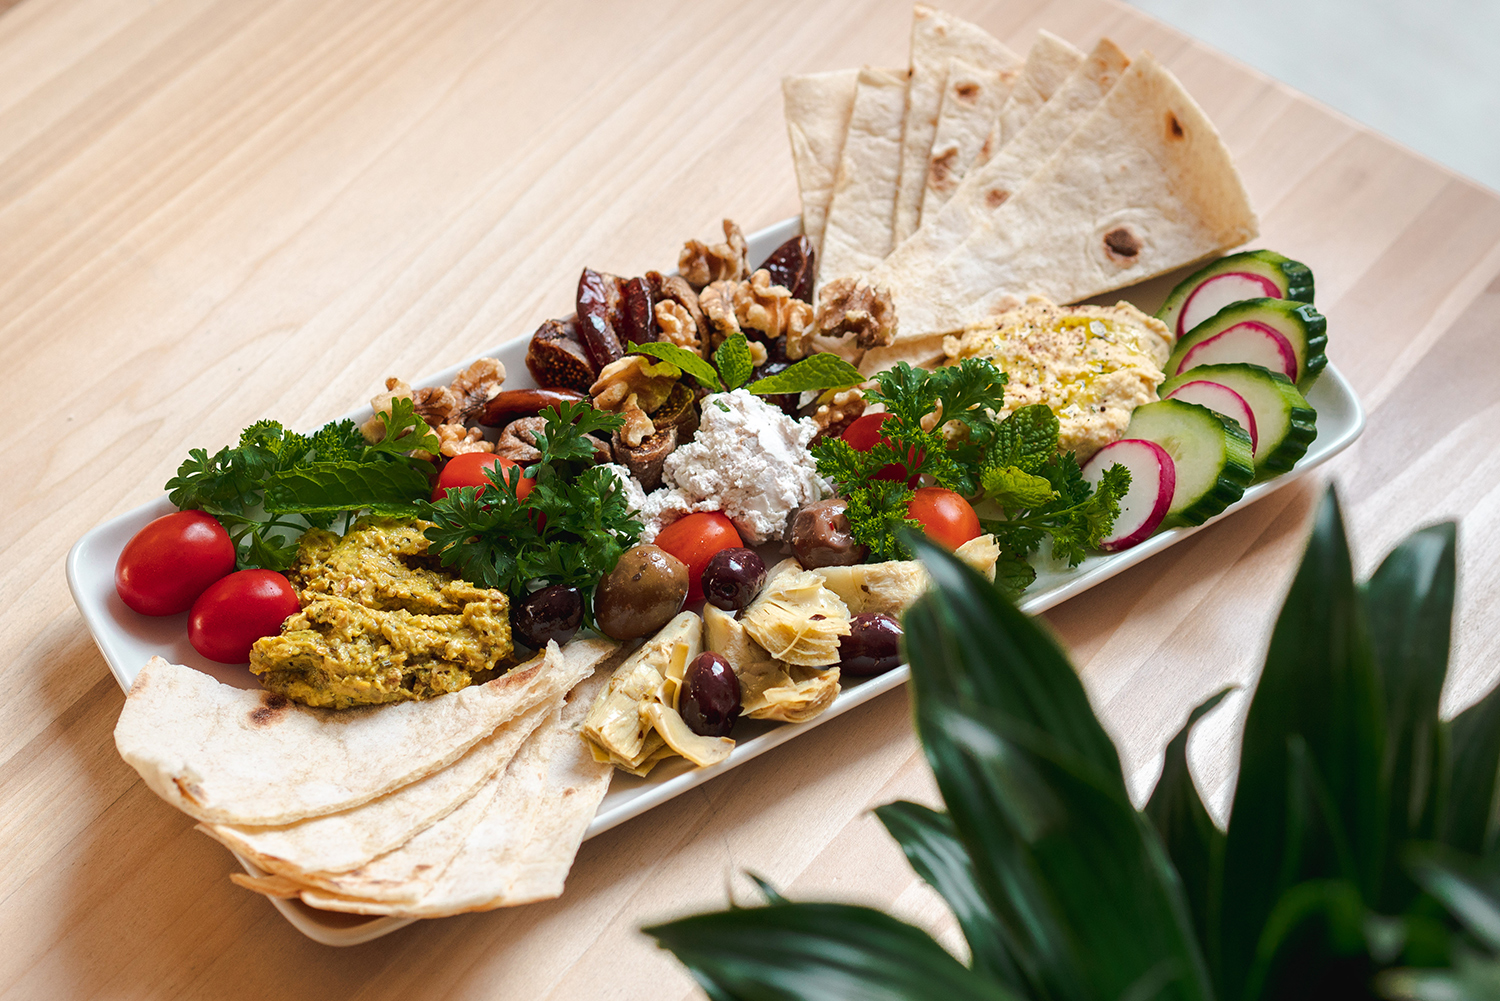 A mezze platter sits on a table at Botte Chai Bar in Saskatoon Saskatchewan. The platter has cucumber and radish slices, pita bread, olives, grape tomatoes, hummus, kale, and a varity of dips and nuts.